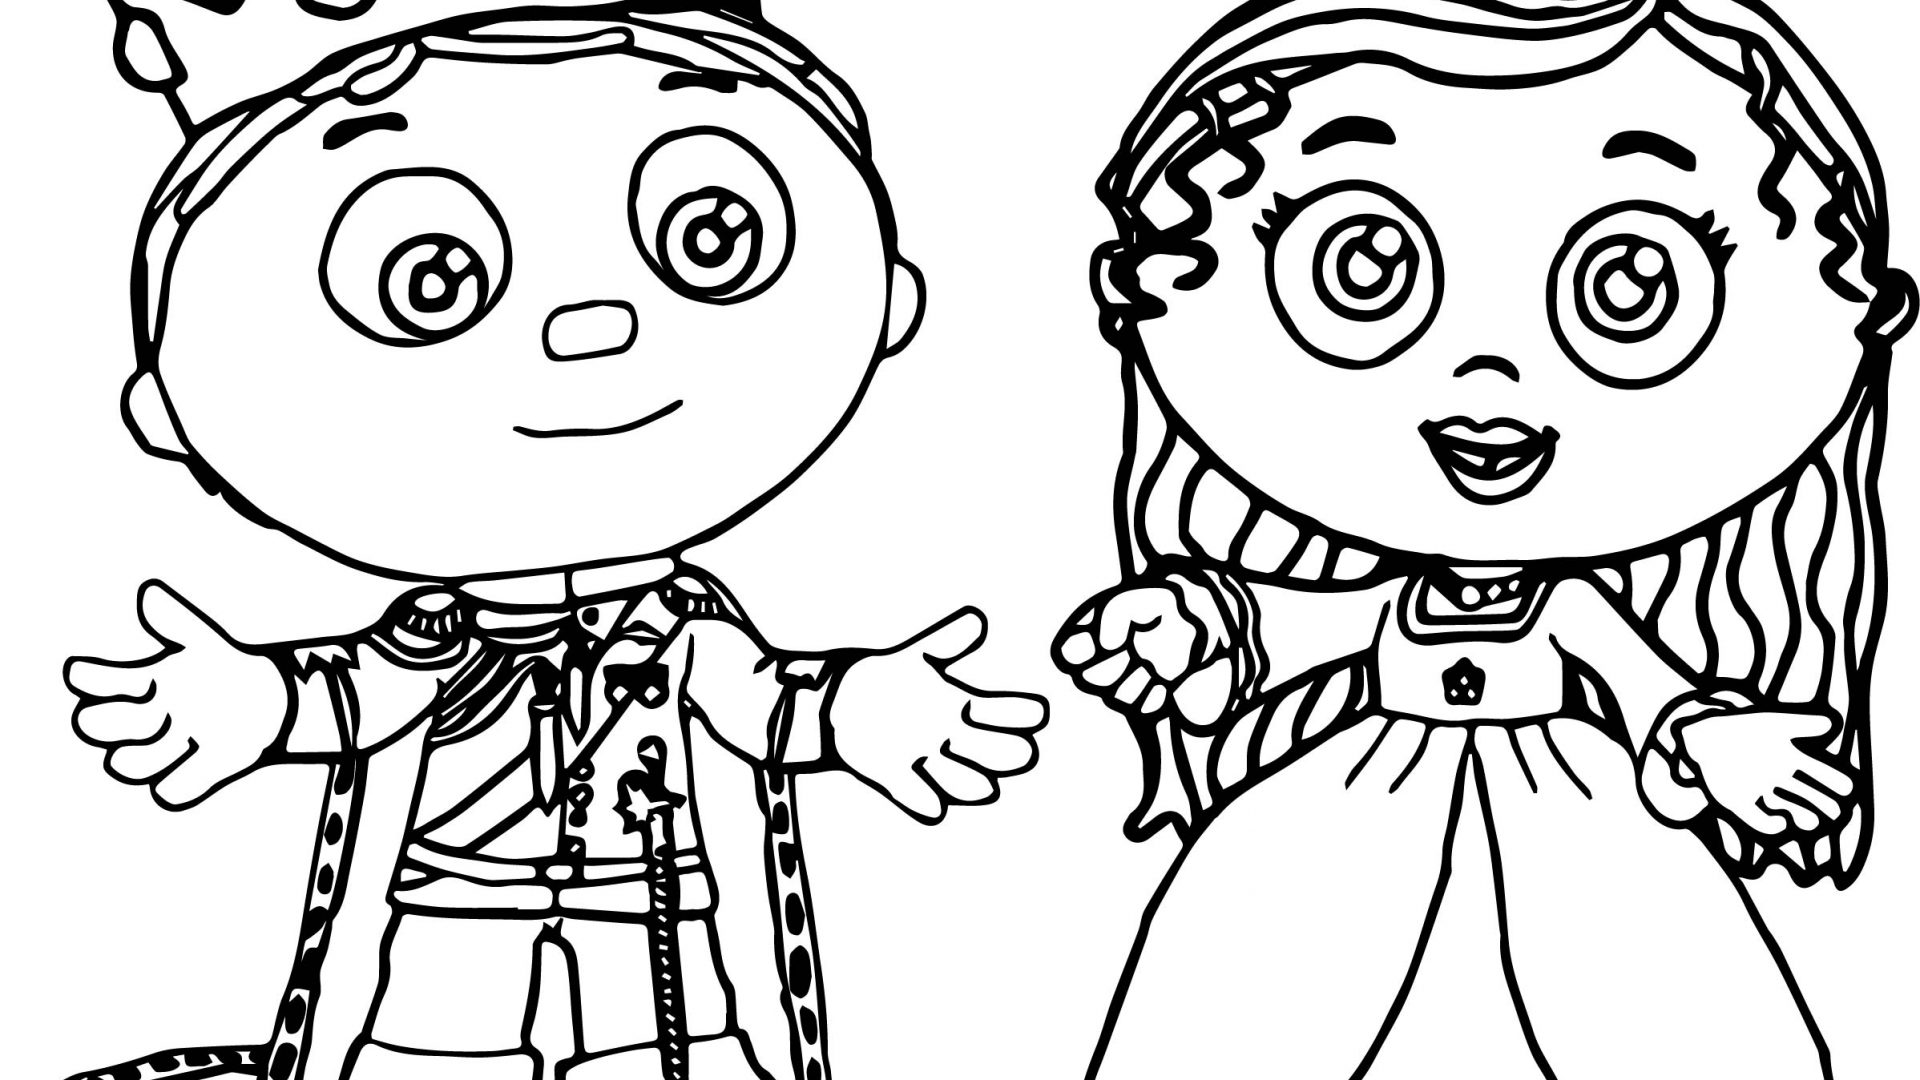 Super Why Coloring Pages Printable at GetDrawings.com | Free ...